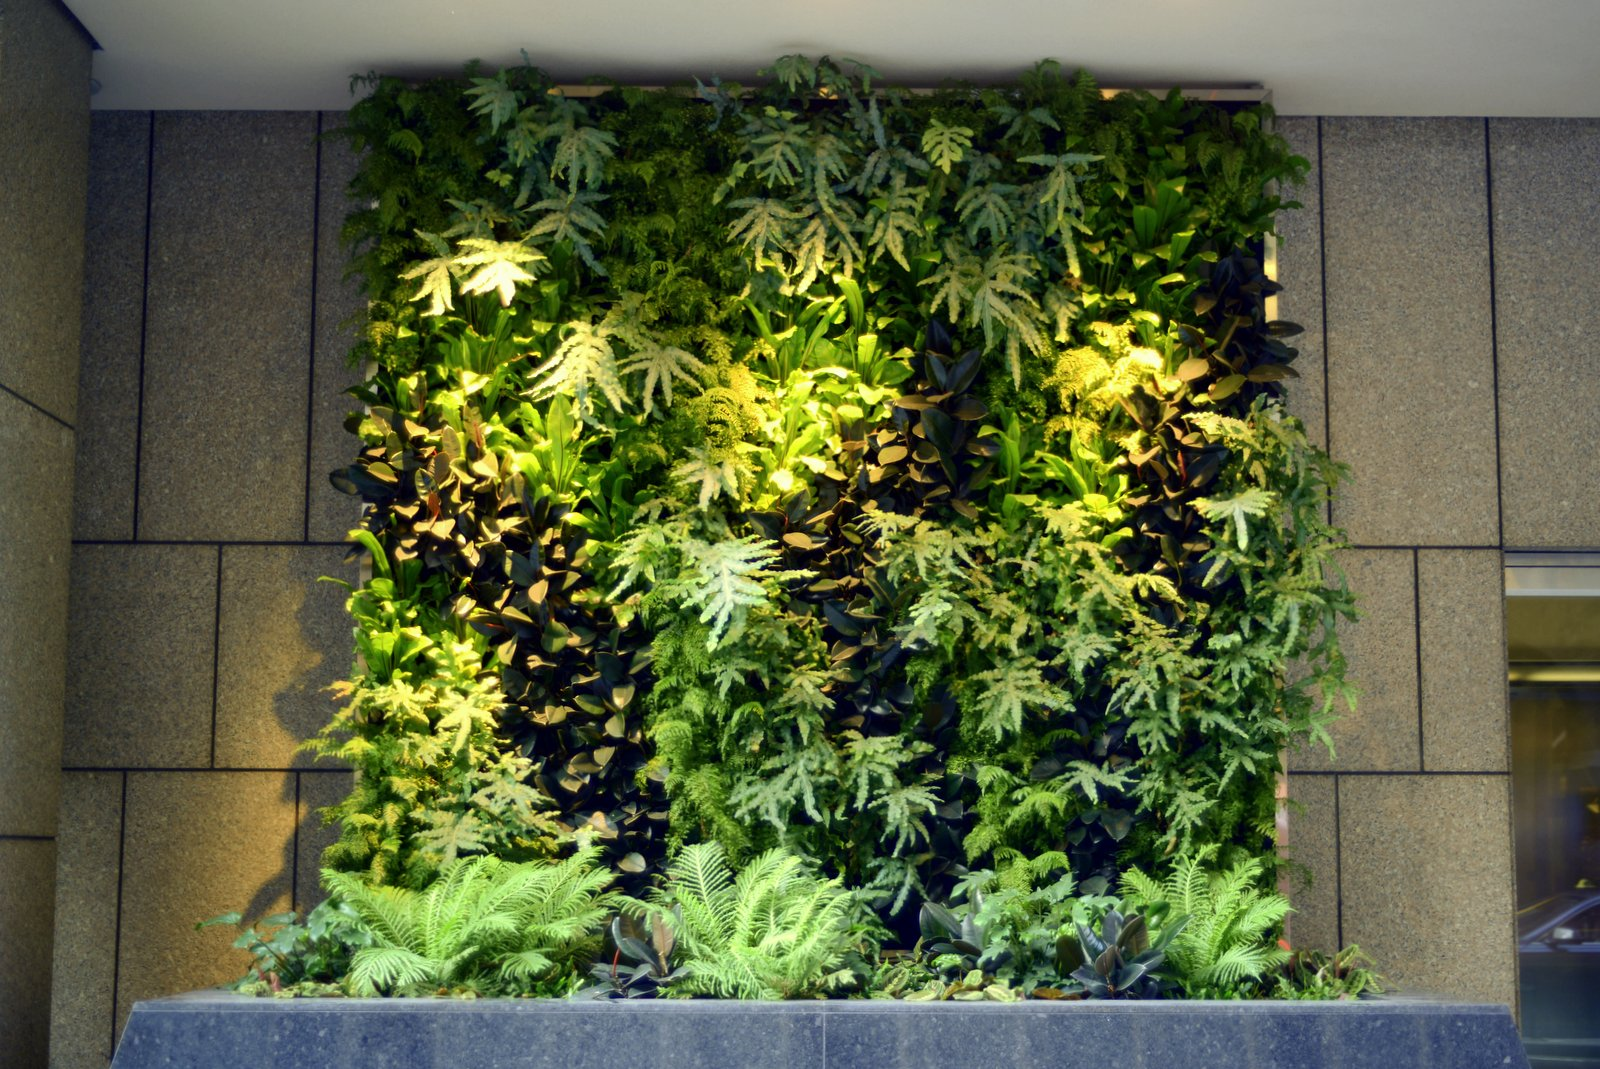 Plants on walls vertical garden systems 6 months mature Green walls vertical planting systems